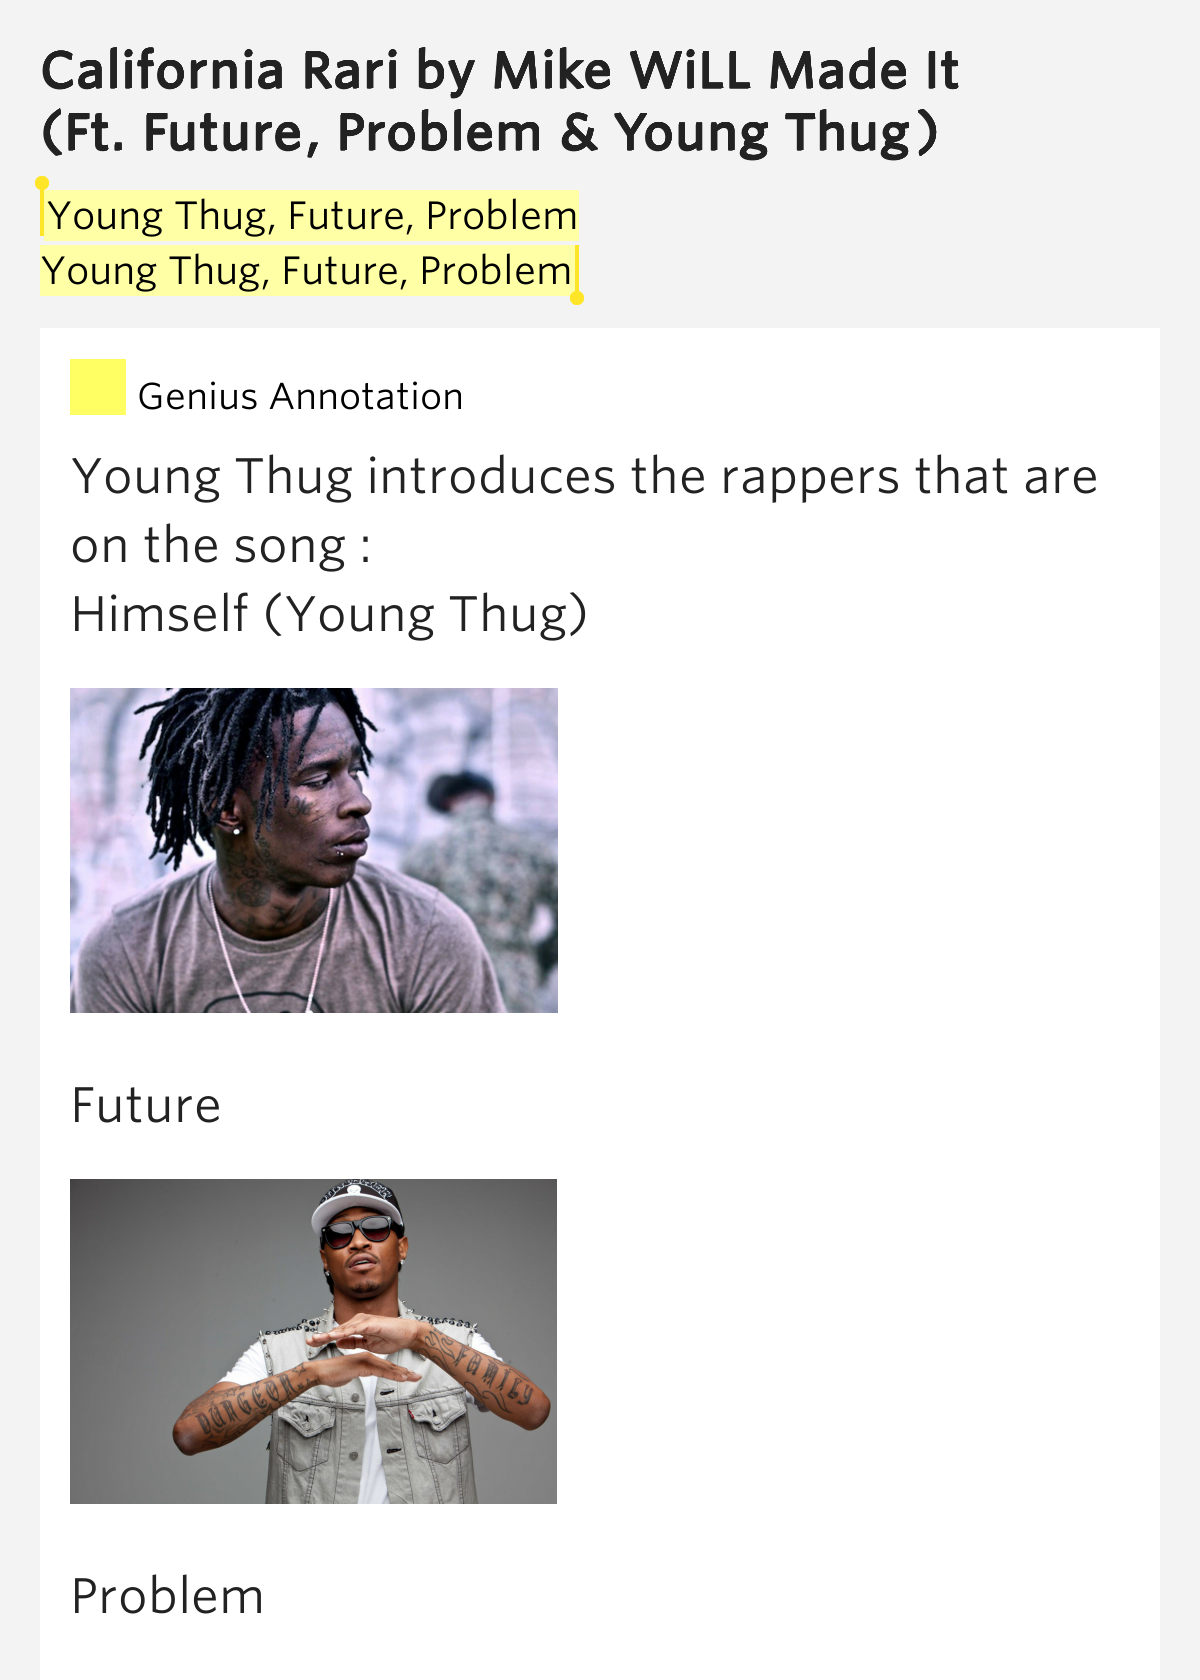 young thug problem lyrics